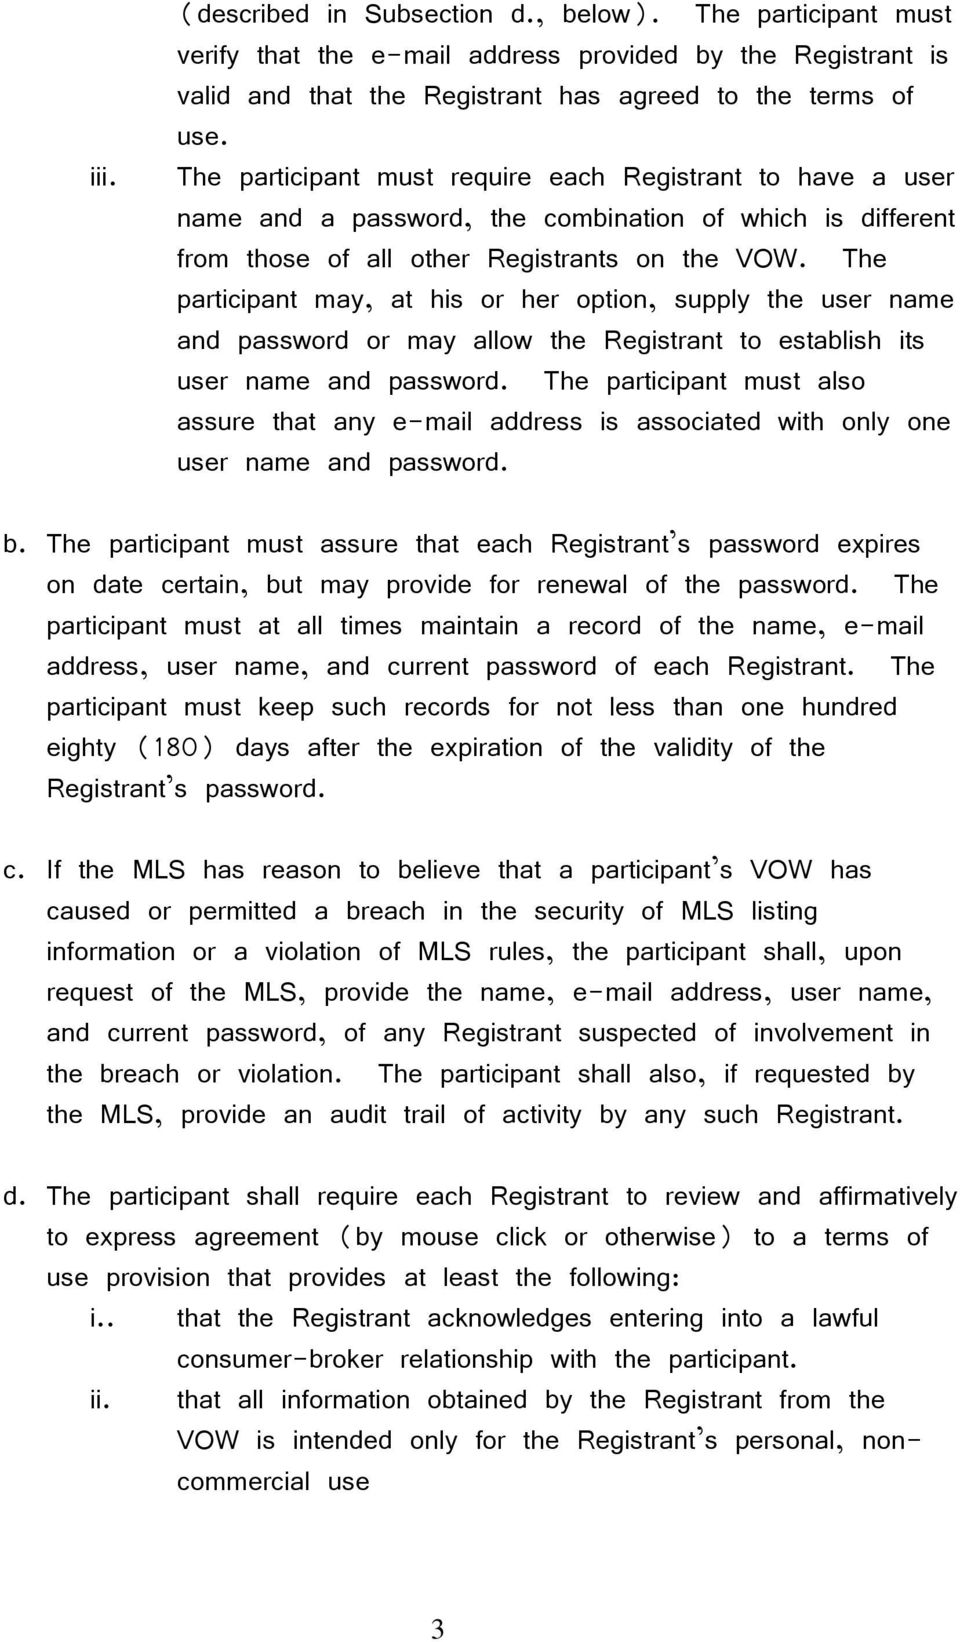 The participant may, at his or her option, supply the user name and password or may allow the Registrant to establish its user name and password.